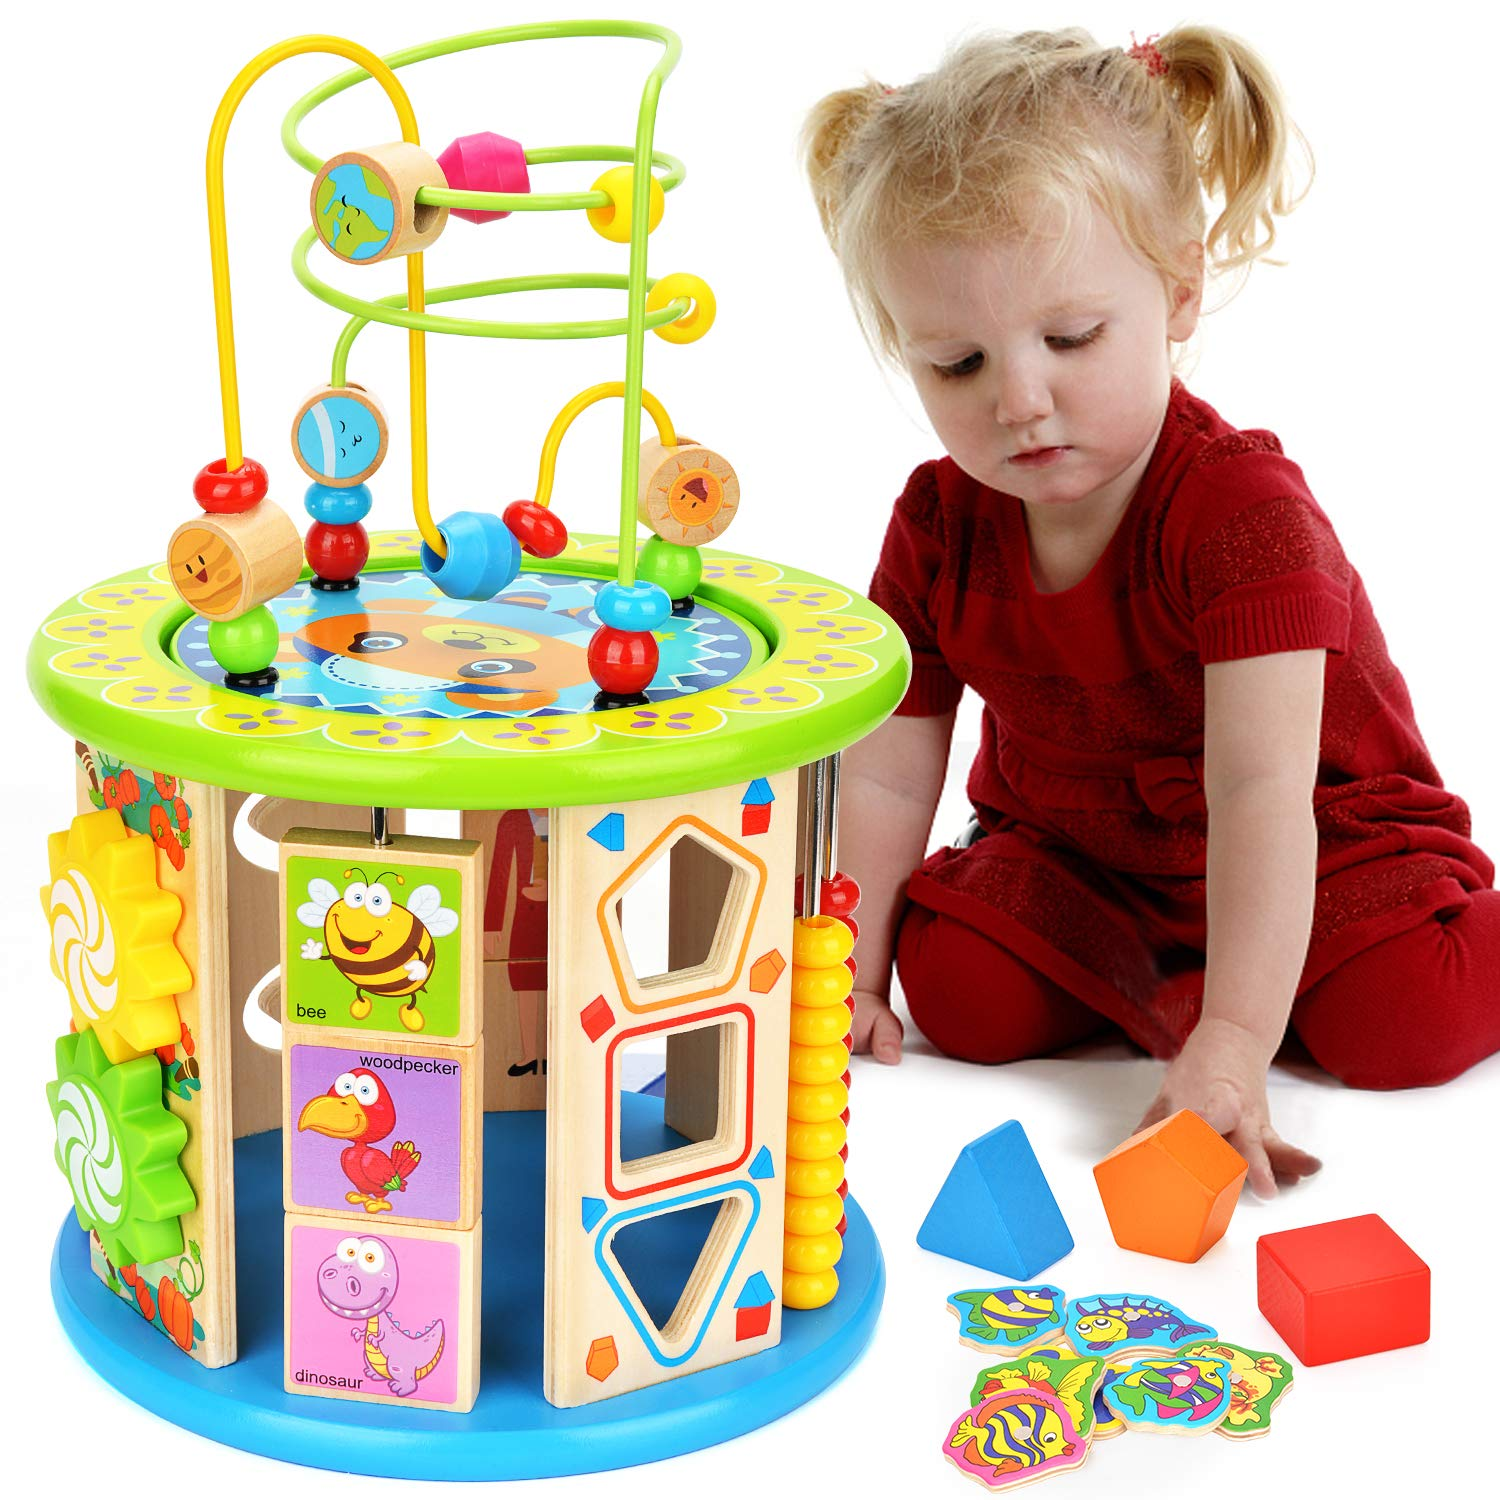 BATTOP Activity Cube Toys Baby Educational Wooden Bead Maze CPSC Certified for 1 Year Old Boy and Girl Toddlers Gift 10 in 1